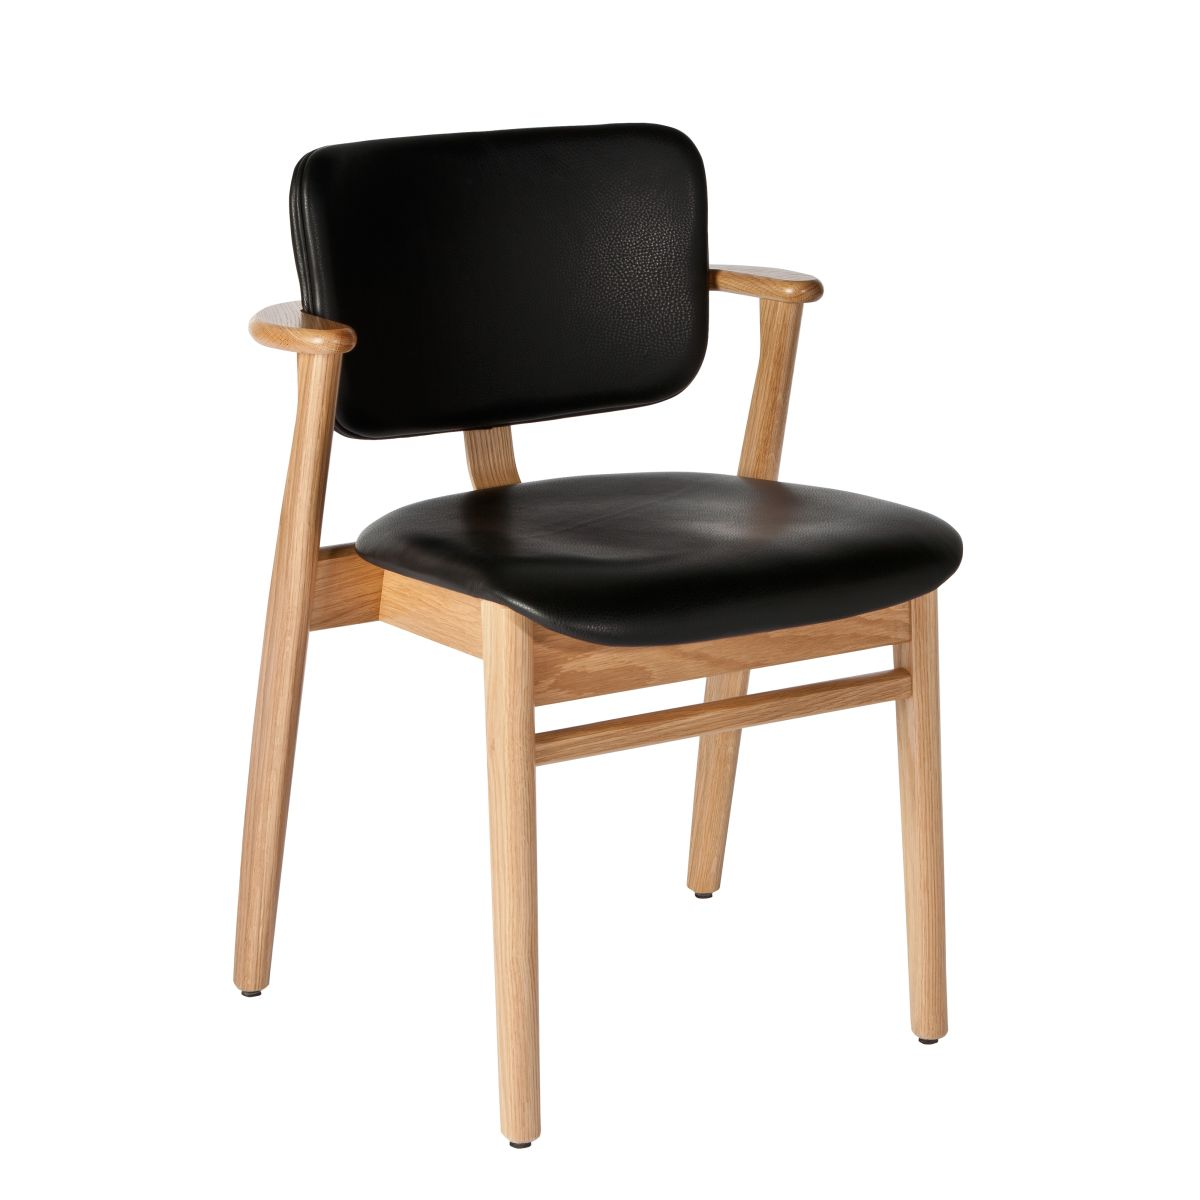 Domus-Chair-Black-Leather-Upholstery_Web-1977827